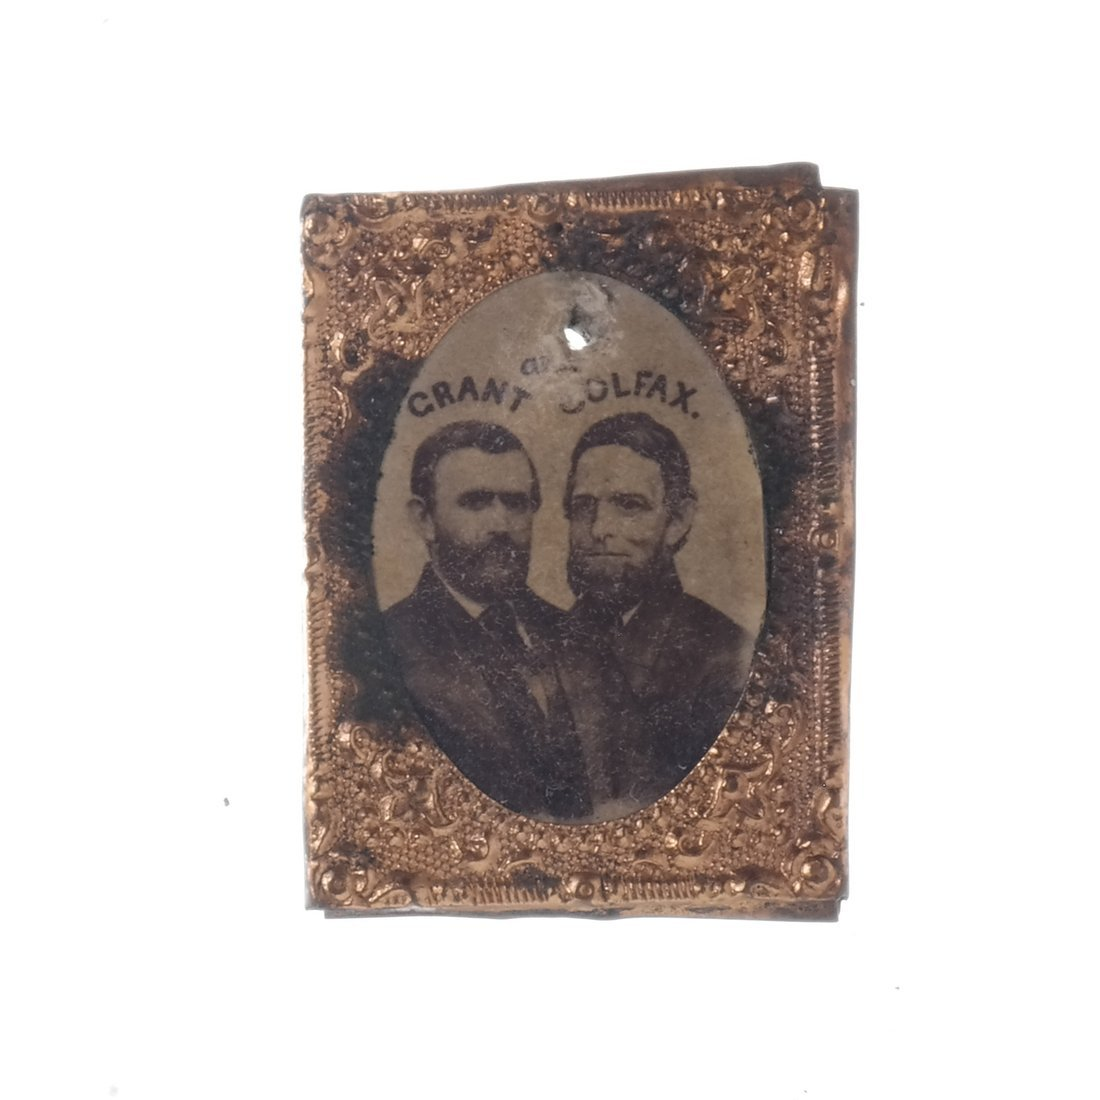 U.S. Grant Five Gem-Size Portrait Stickpins - 5